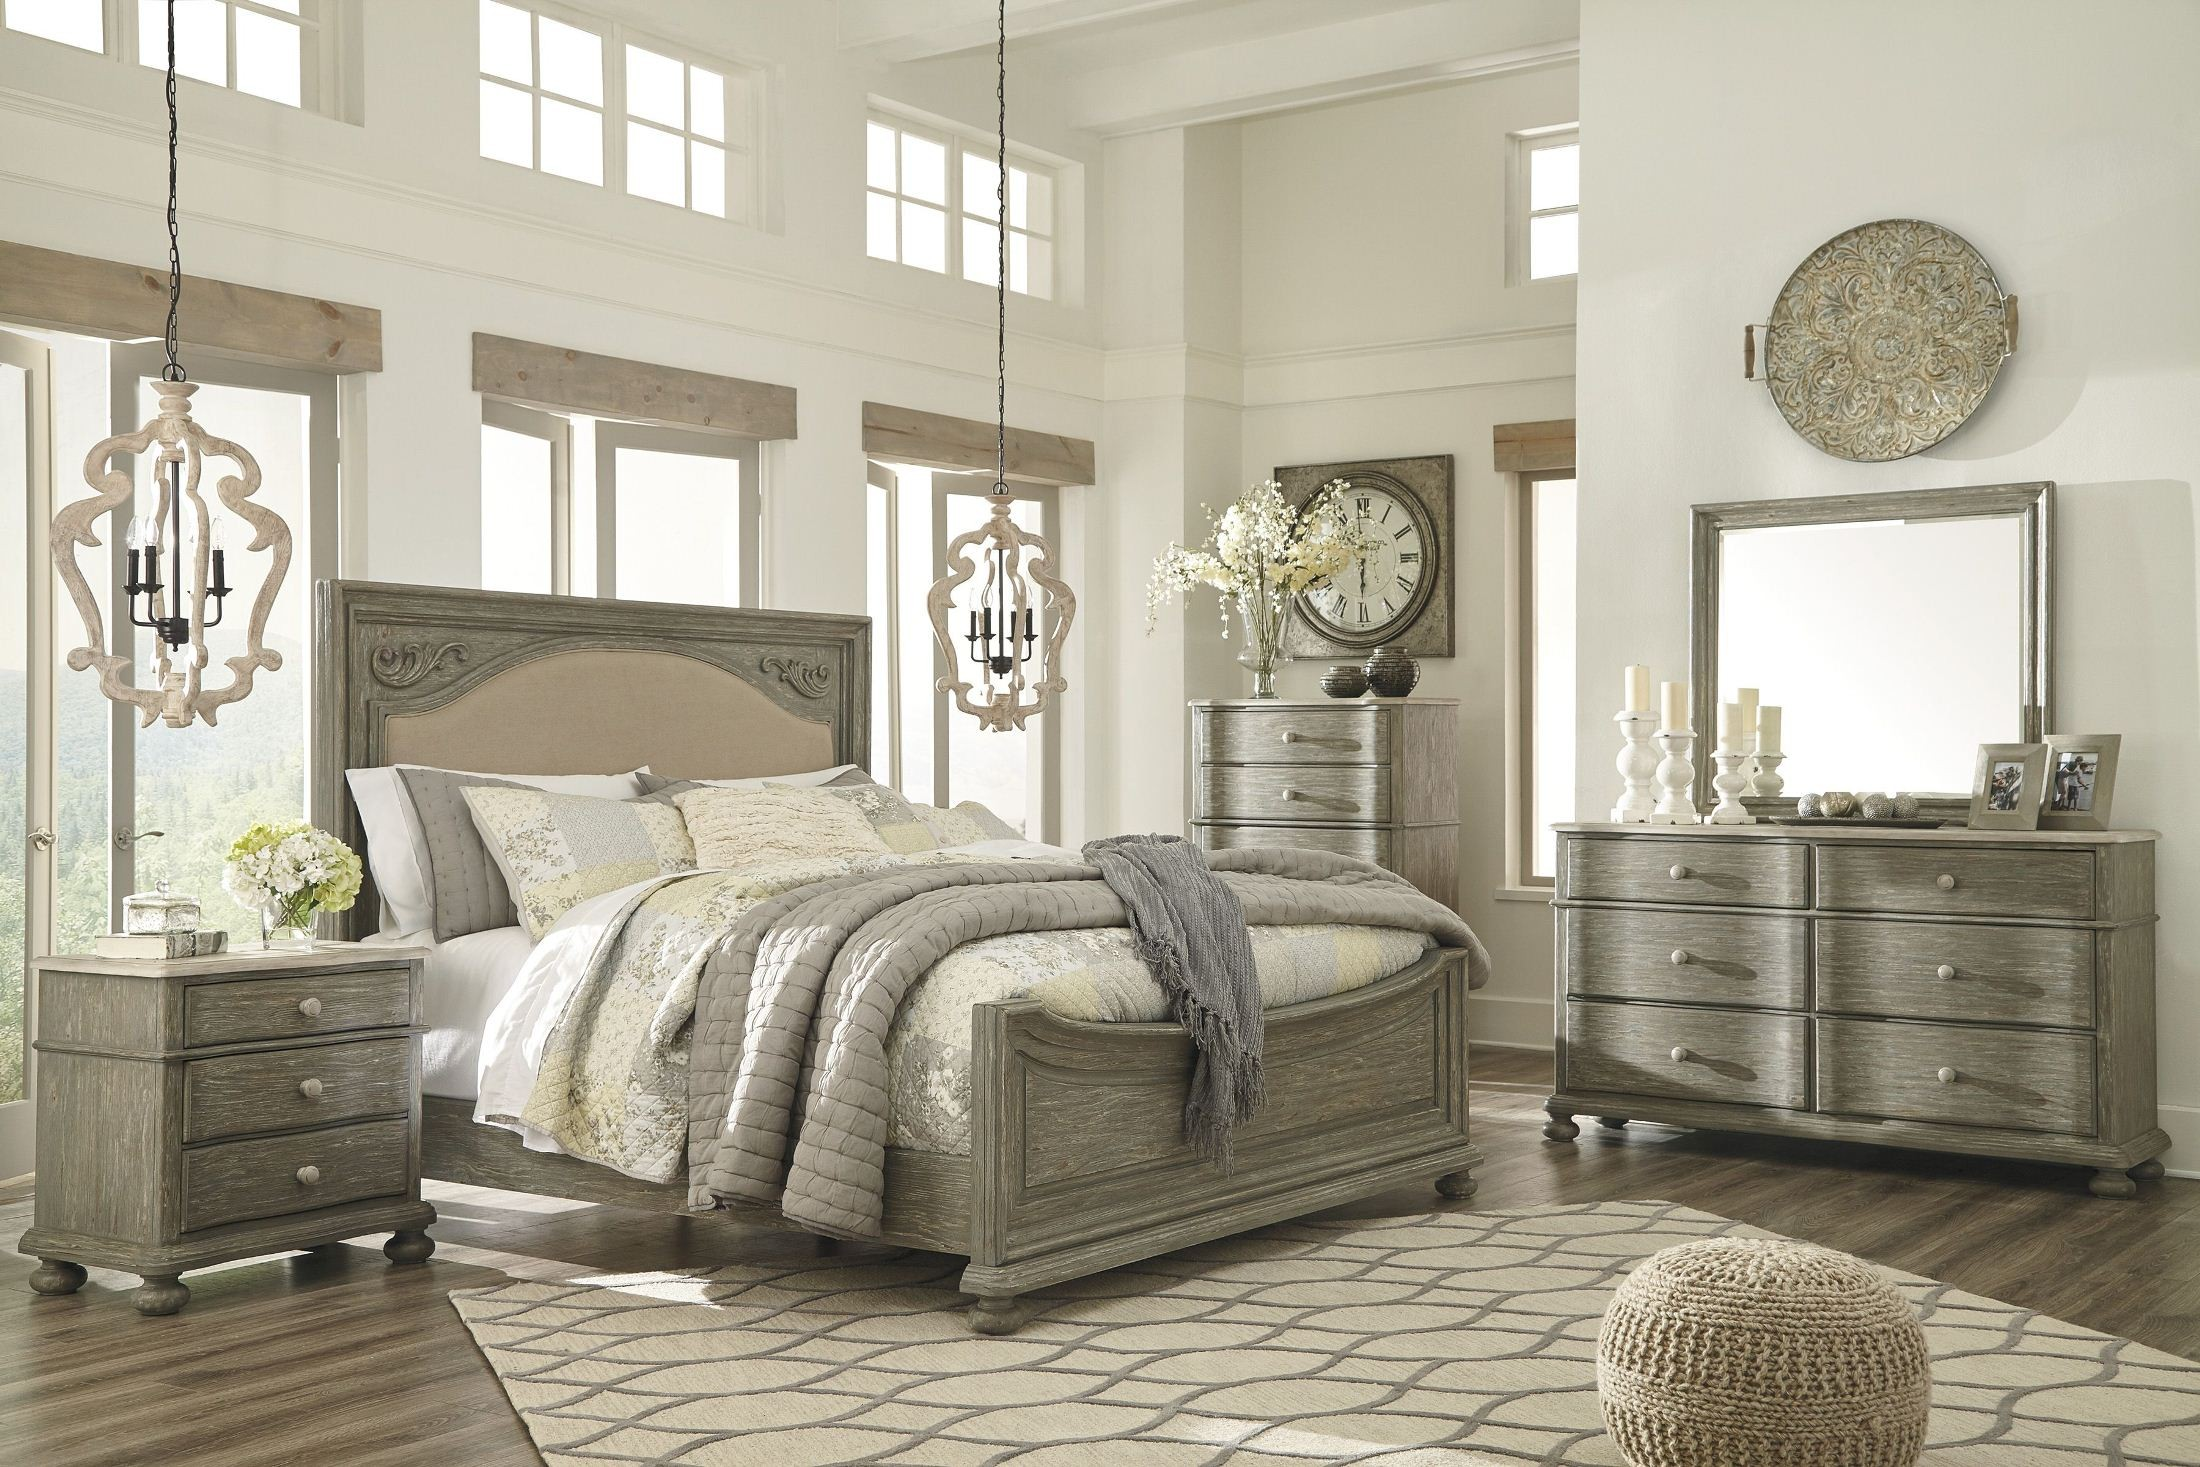 grey bedroom chair next plus size beach chairs marleny gray and whitewash upholstered panel set